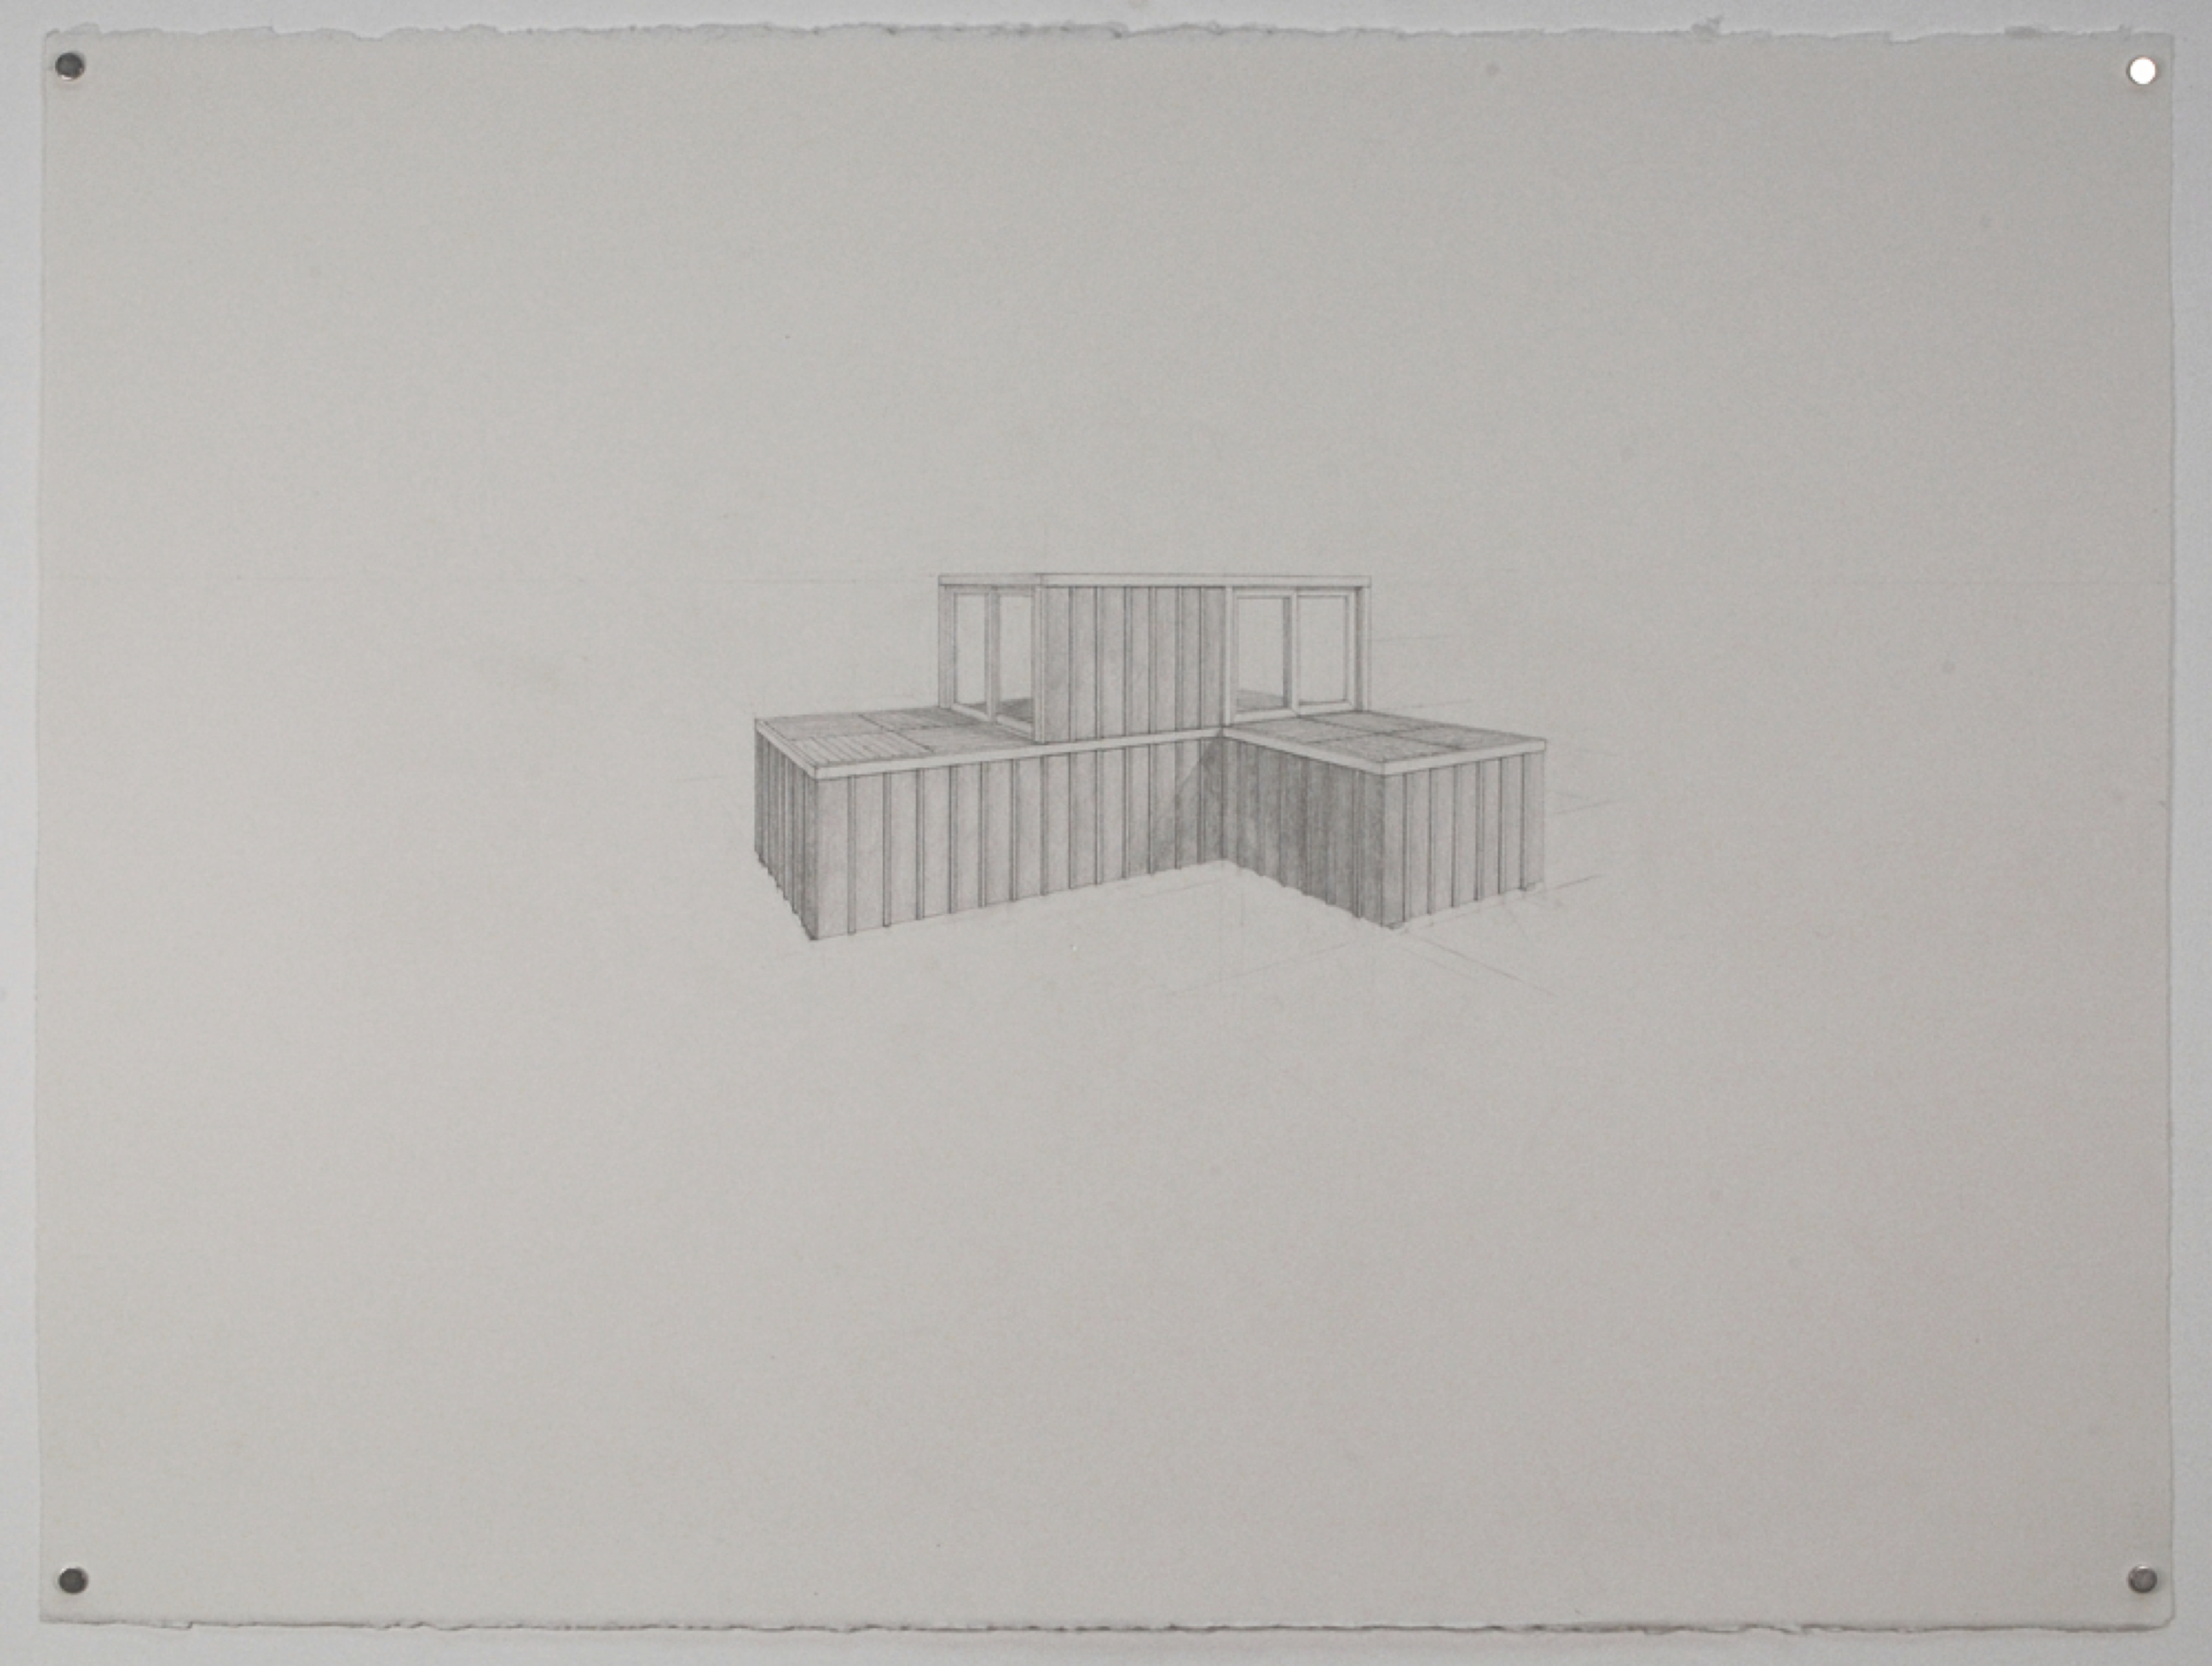 Dumpster 4 / graphite on paper / 22 x 30""